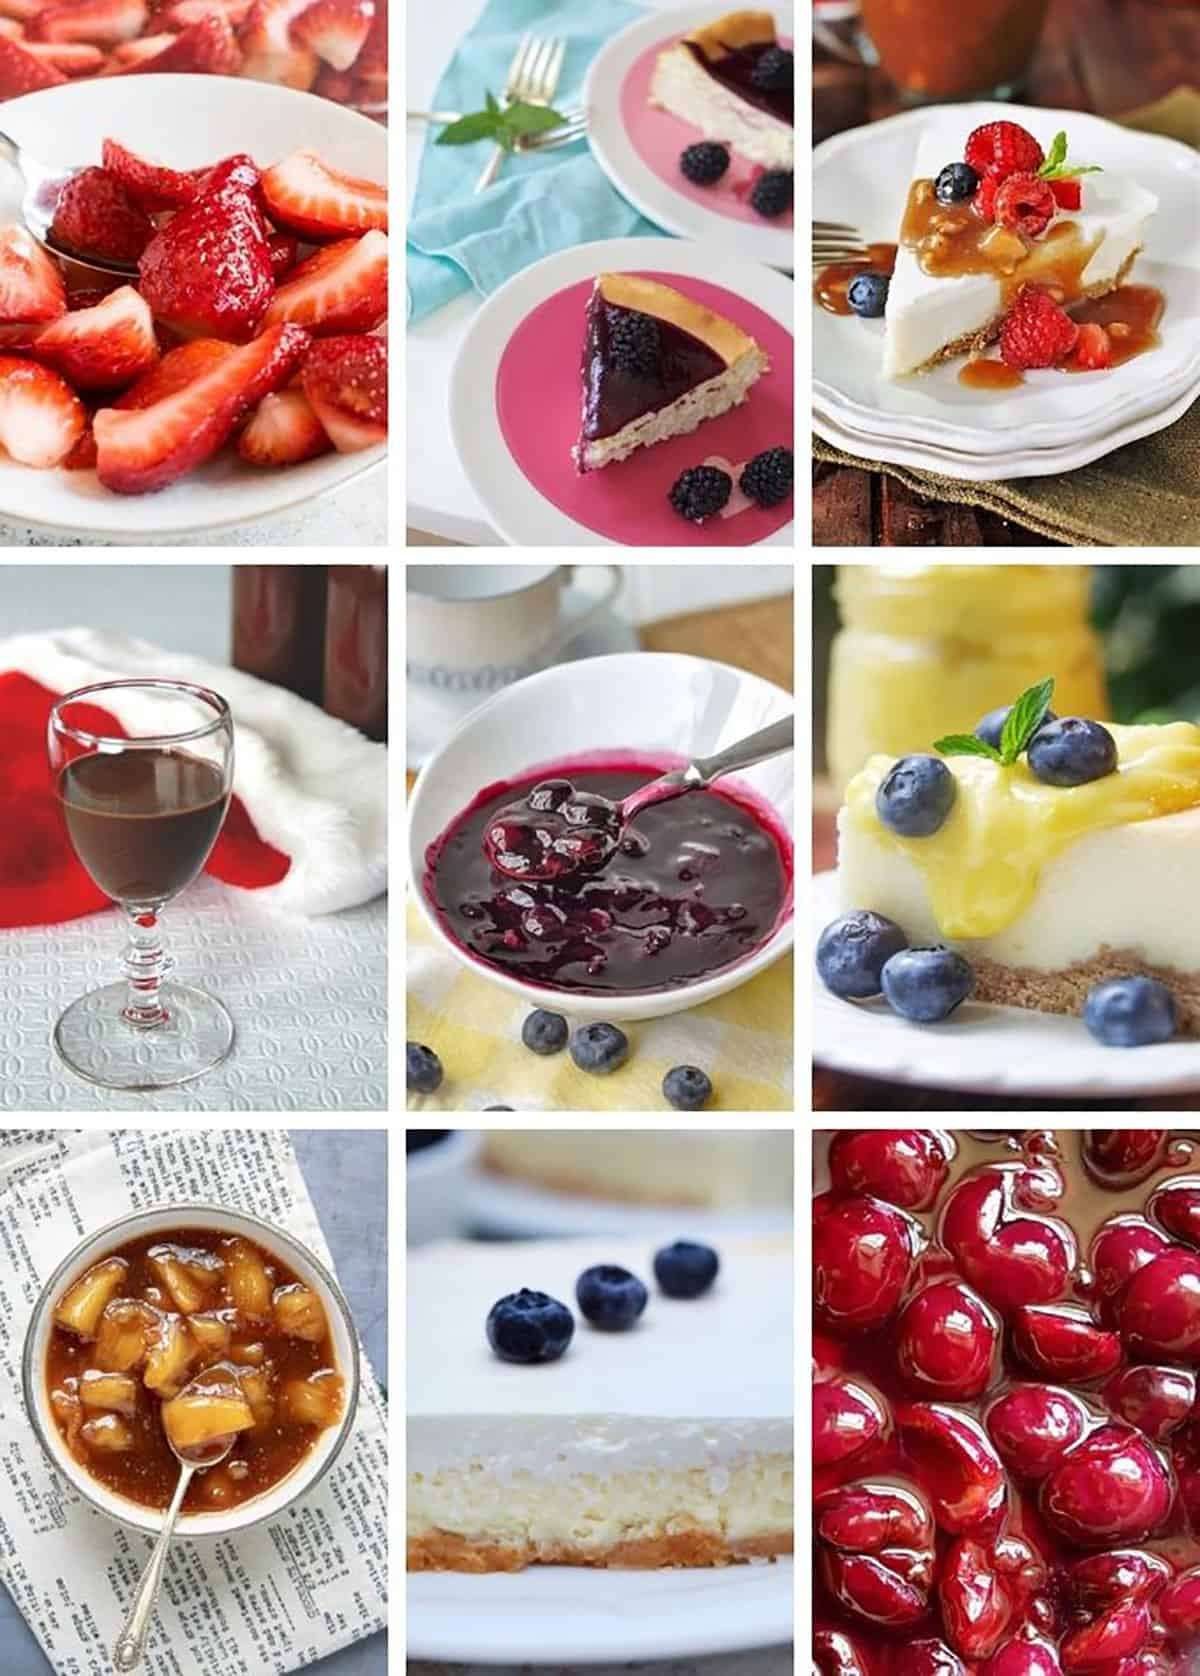 collage of cheesecake toppings, including chocolate, strawberry, cherry, lemon